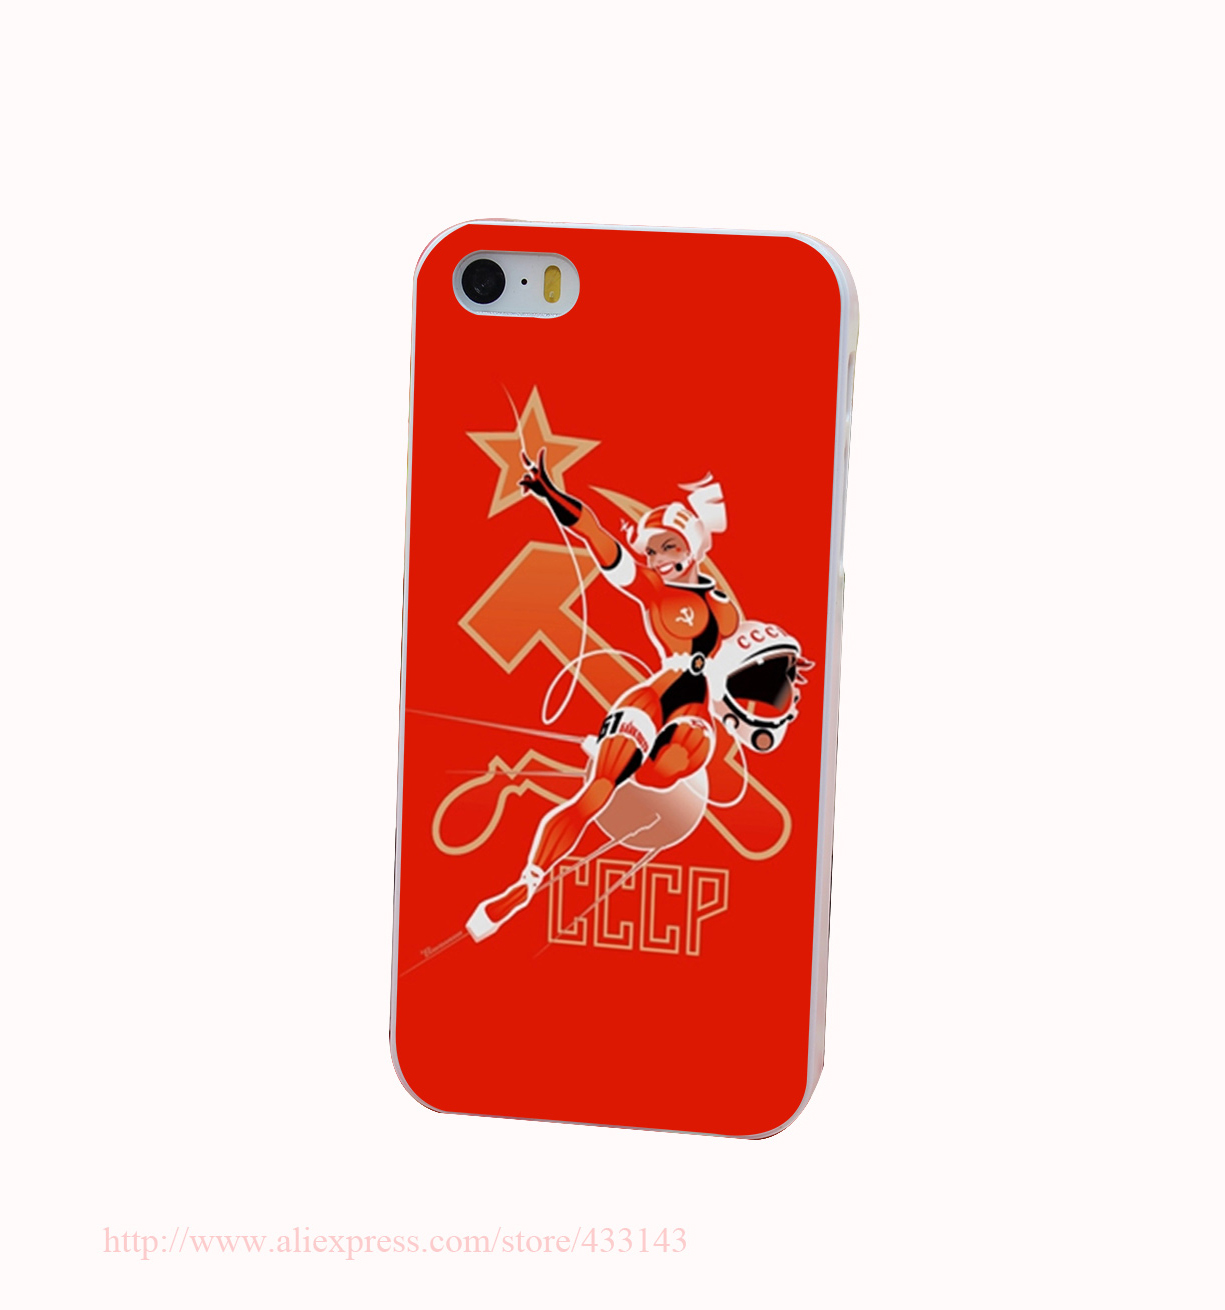 Russian Peace LOGO Hard White Cover Case for iPhone 4 4s 5 5s 5c 6 6s Protect Phone Cases(China (Mainland))